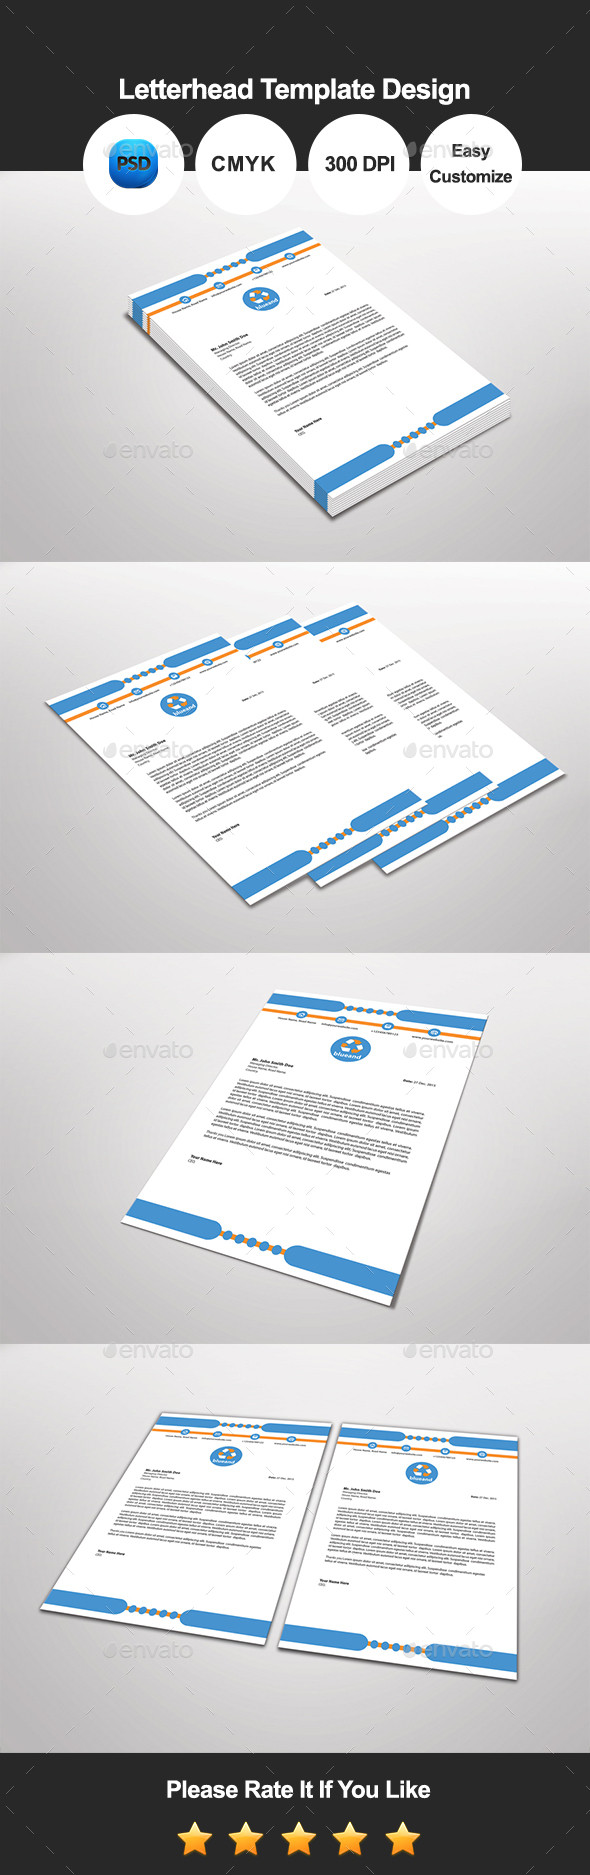 Blue and Letterhead Template Design - Proposals & Invoices Stationery